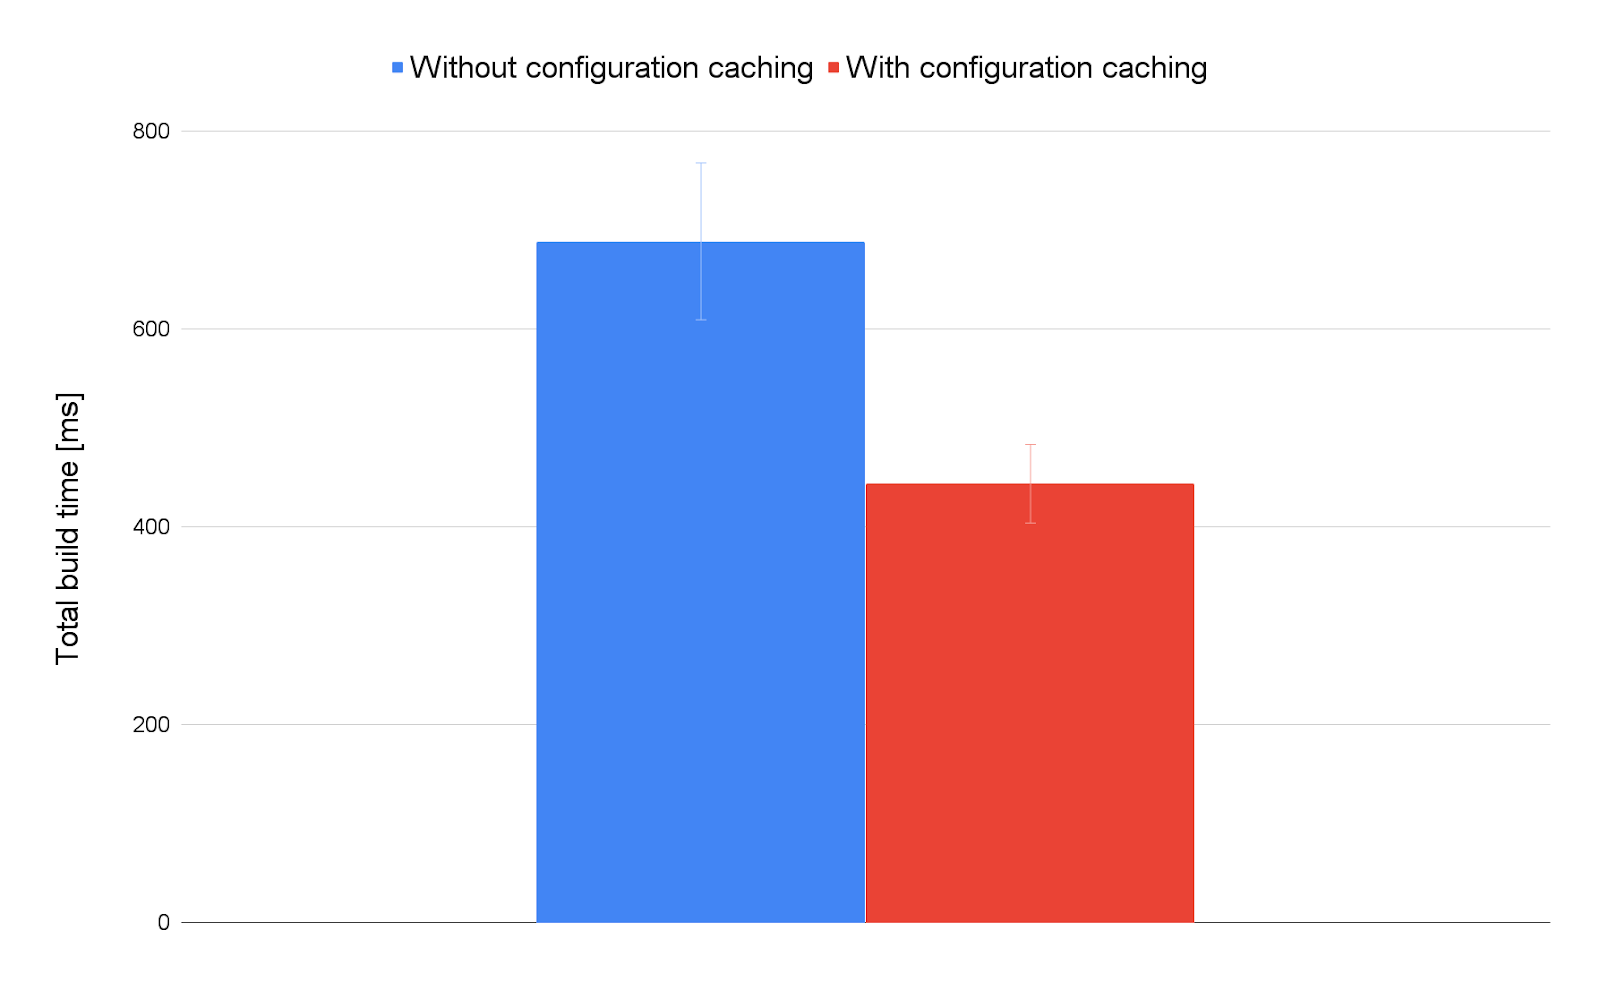 Total build time with and without configuration caching